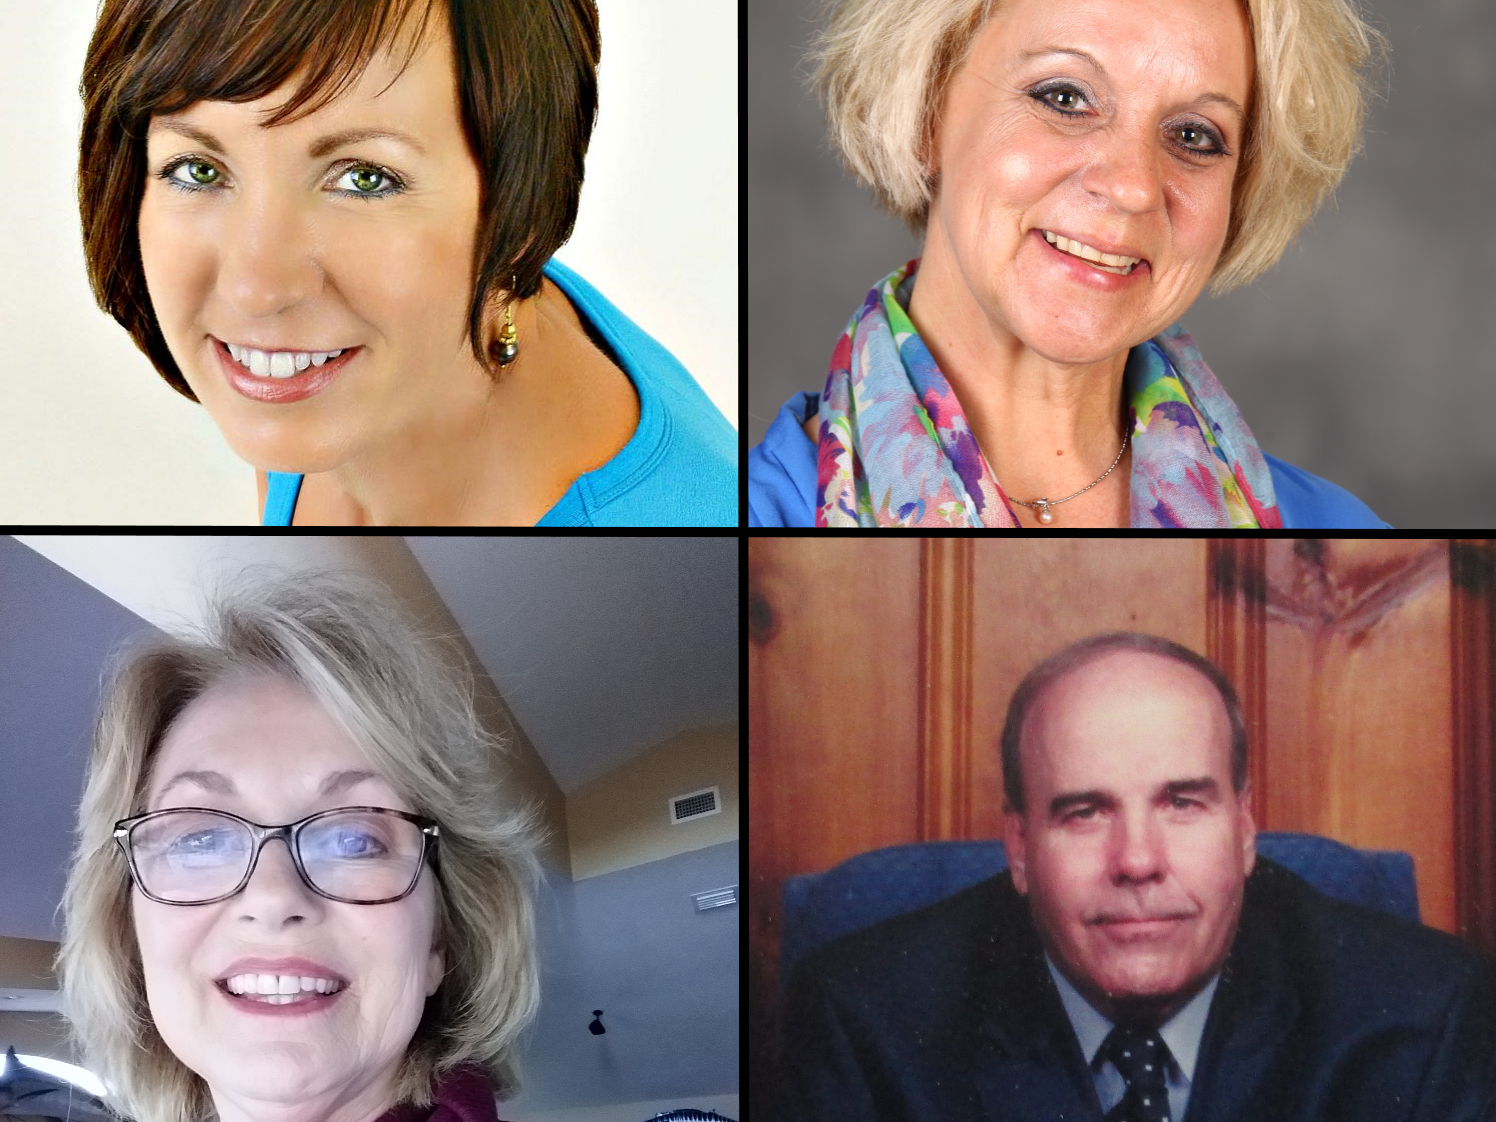 Candidates for Melbourne Beach Commissioner at large (3 year term), 2018 elections; Clockwise from upper left: Joyce Barton; Libby Brown-Brock; Steve Walters (incumbent); Sherri Quarrie (incumbent).